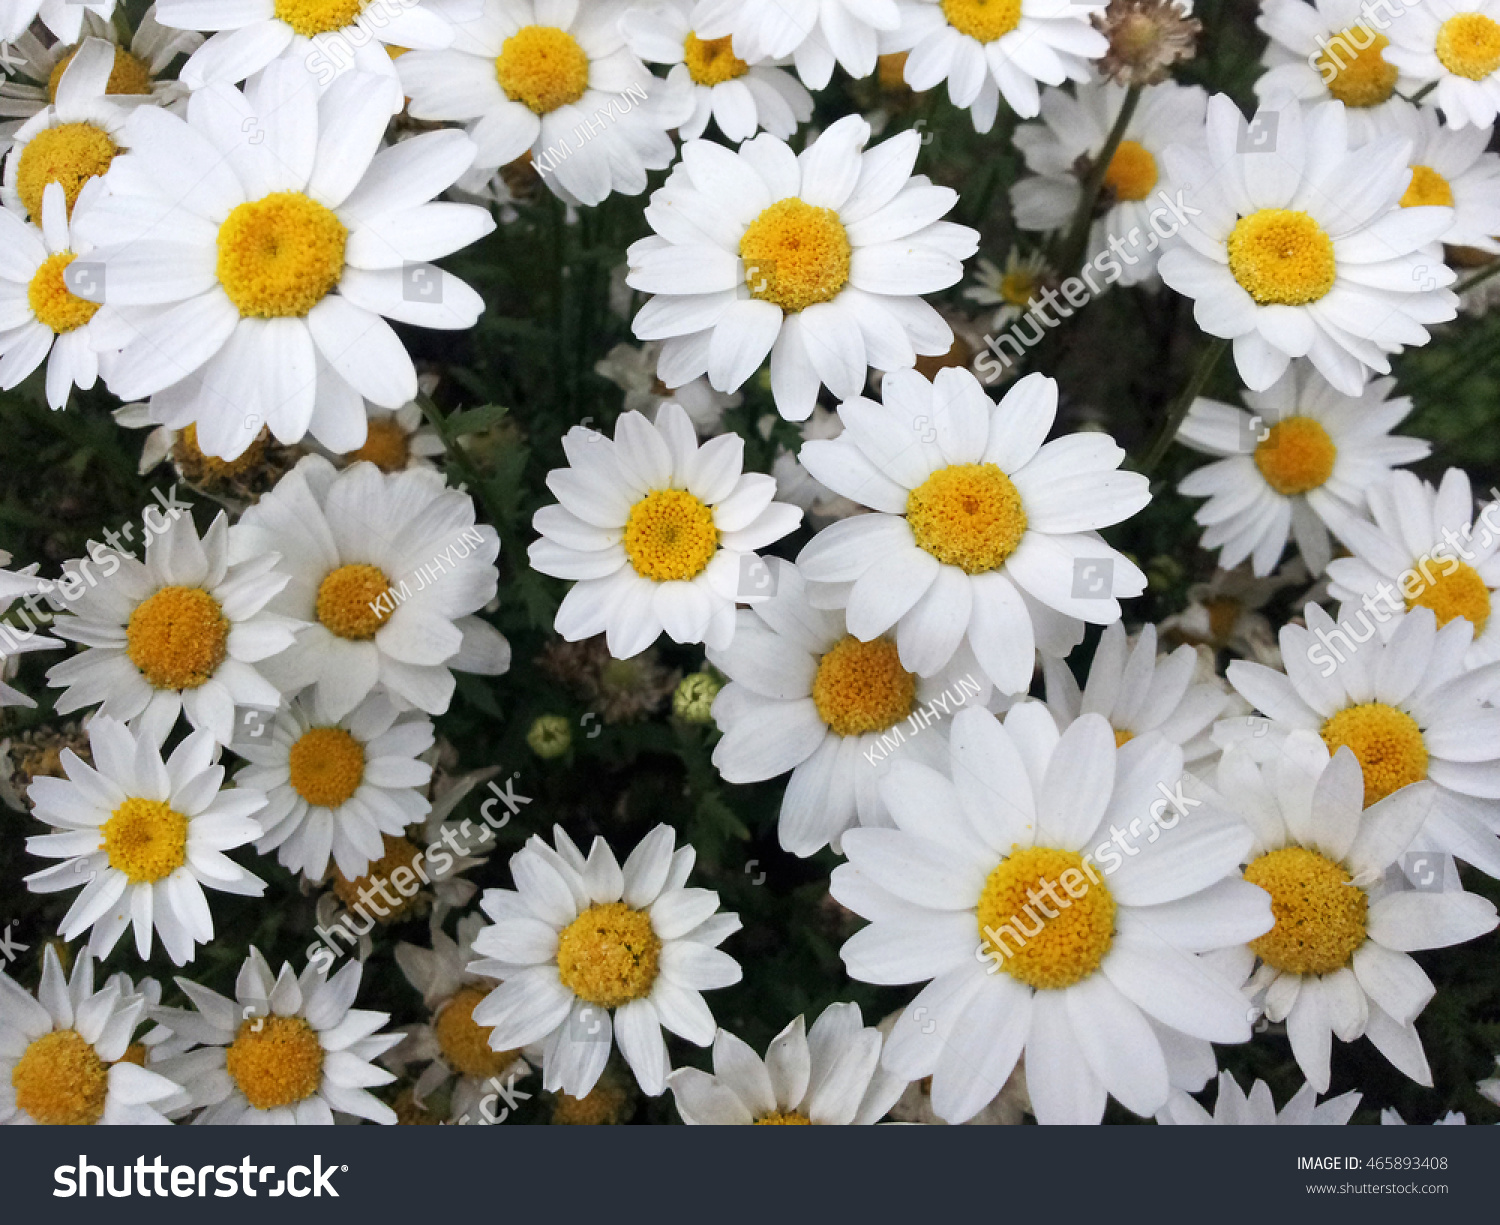 Be engulfed lovely parts pretty young stock photo image royalty be engulfed in lovely parts of a pretty young chrysanthemum izmirmasajfo